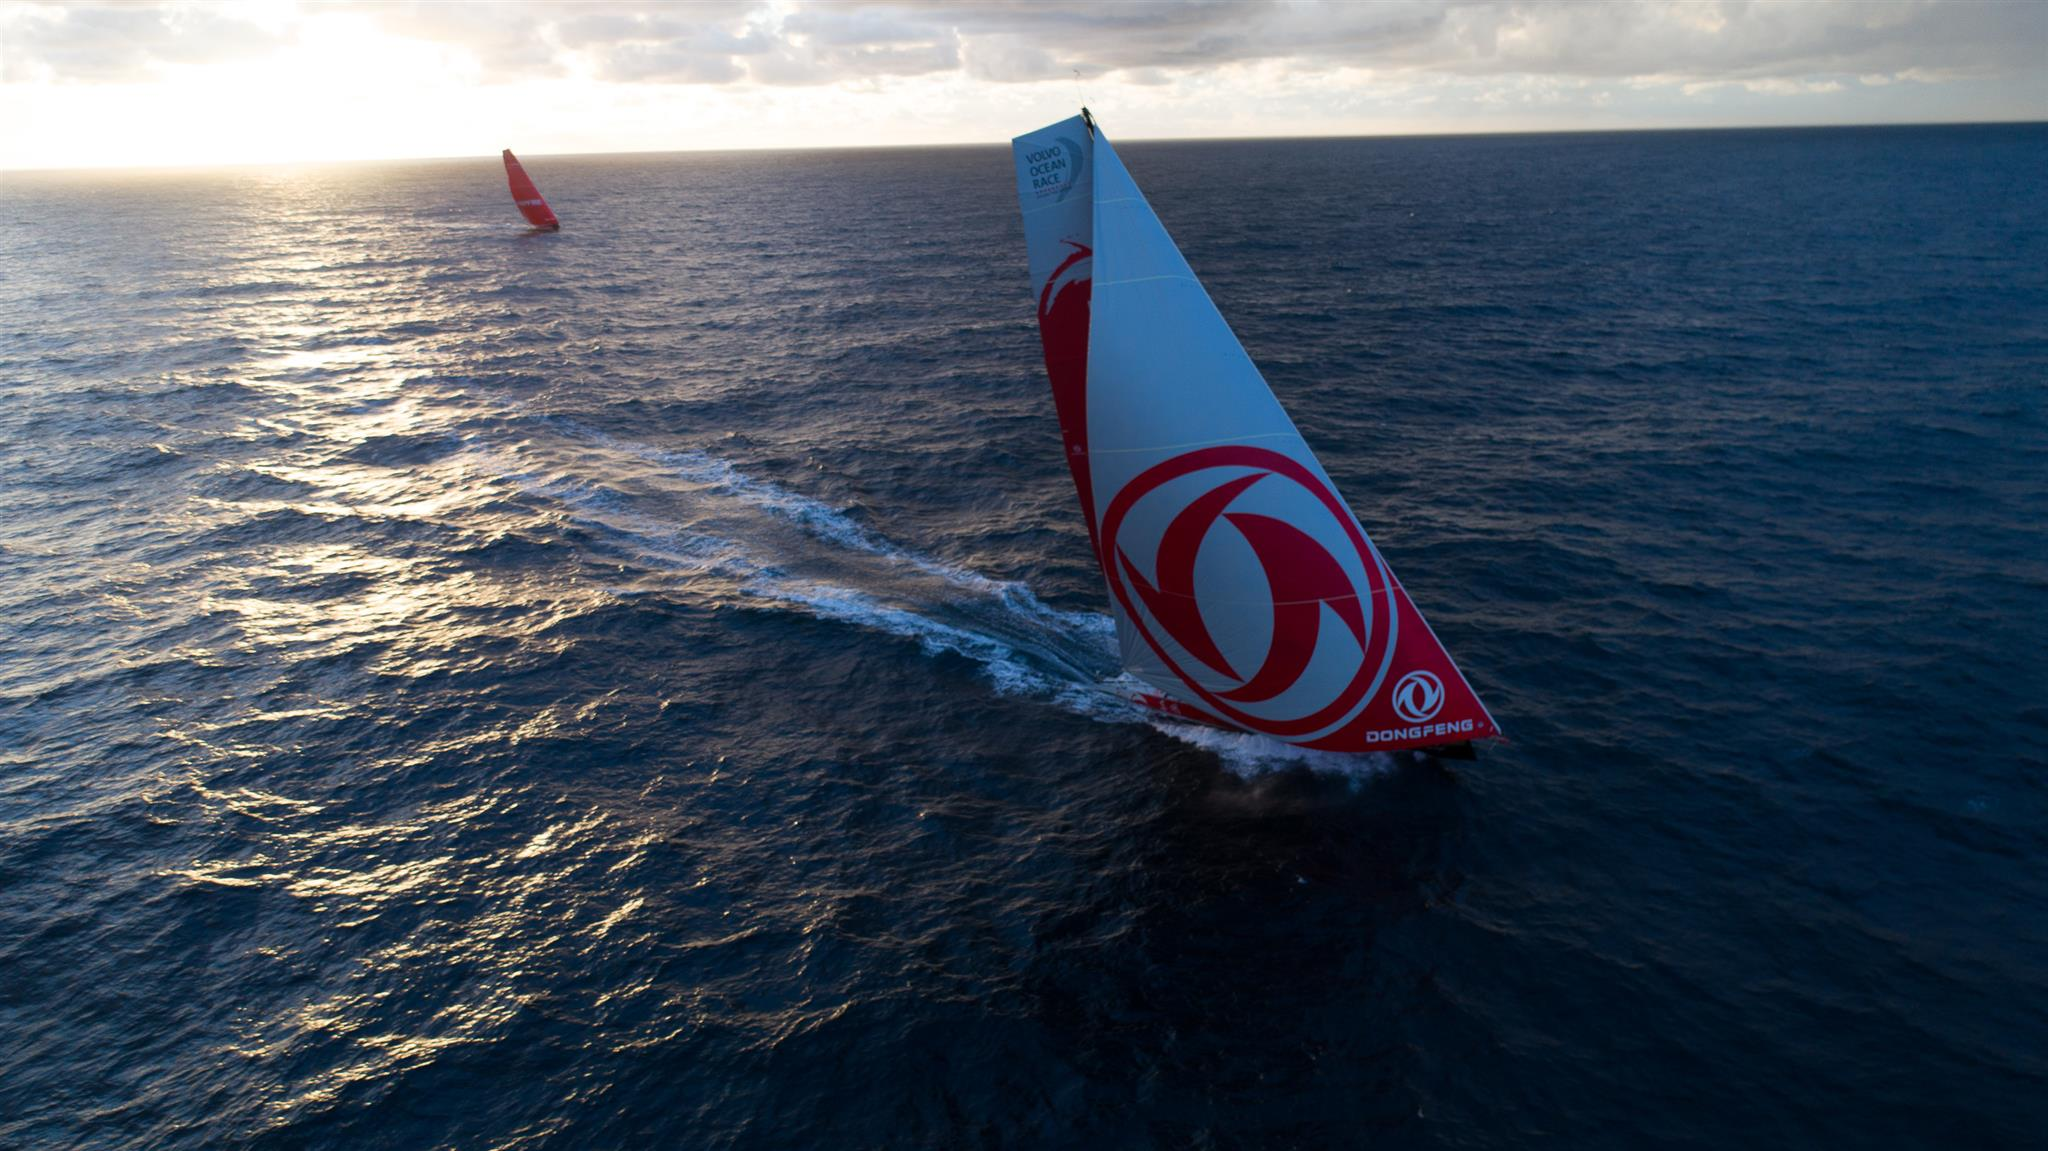 The Volvo Ocean 65 Dongfeng, skippered by Charles Caudrelier of France clinched a hard-fought class win in the 47th biennial Rolex Fastnet Race with just a 54 second lead on VO65 MAPFRE © J.Lecaudey/Volvo Ocean Race